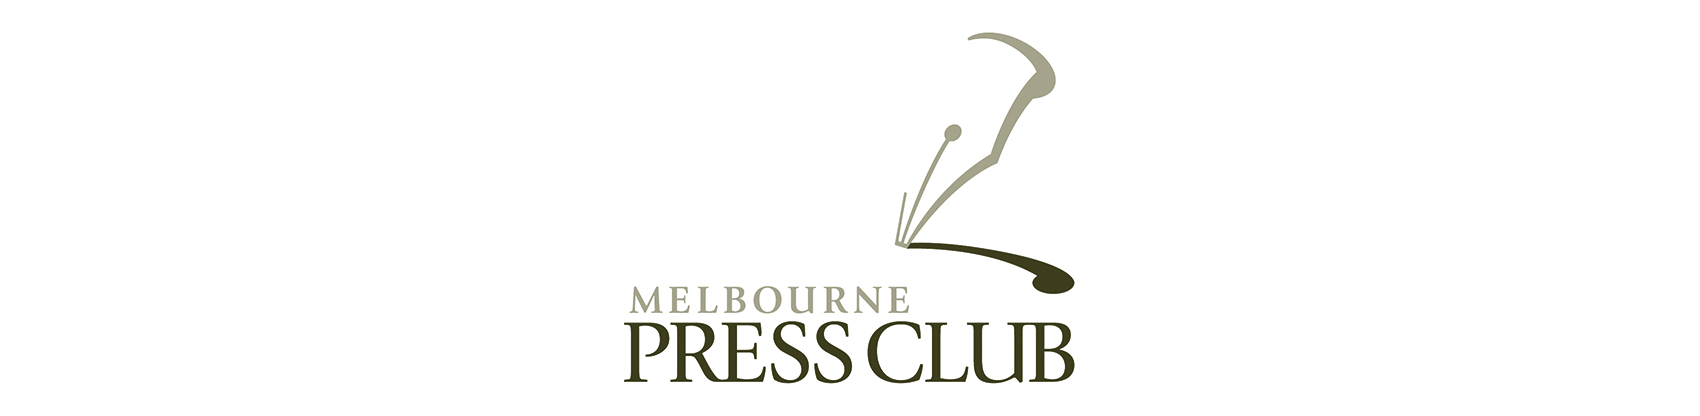 Melbourne Press Club